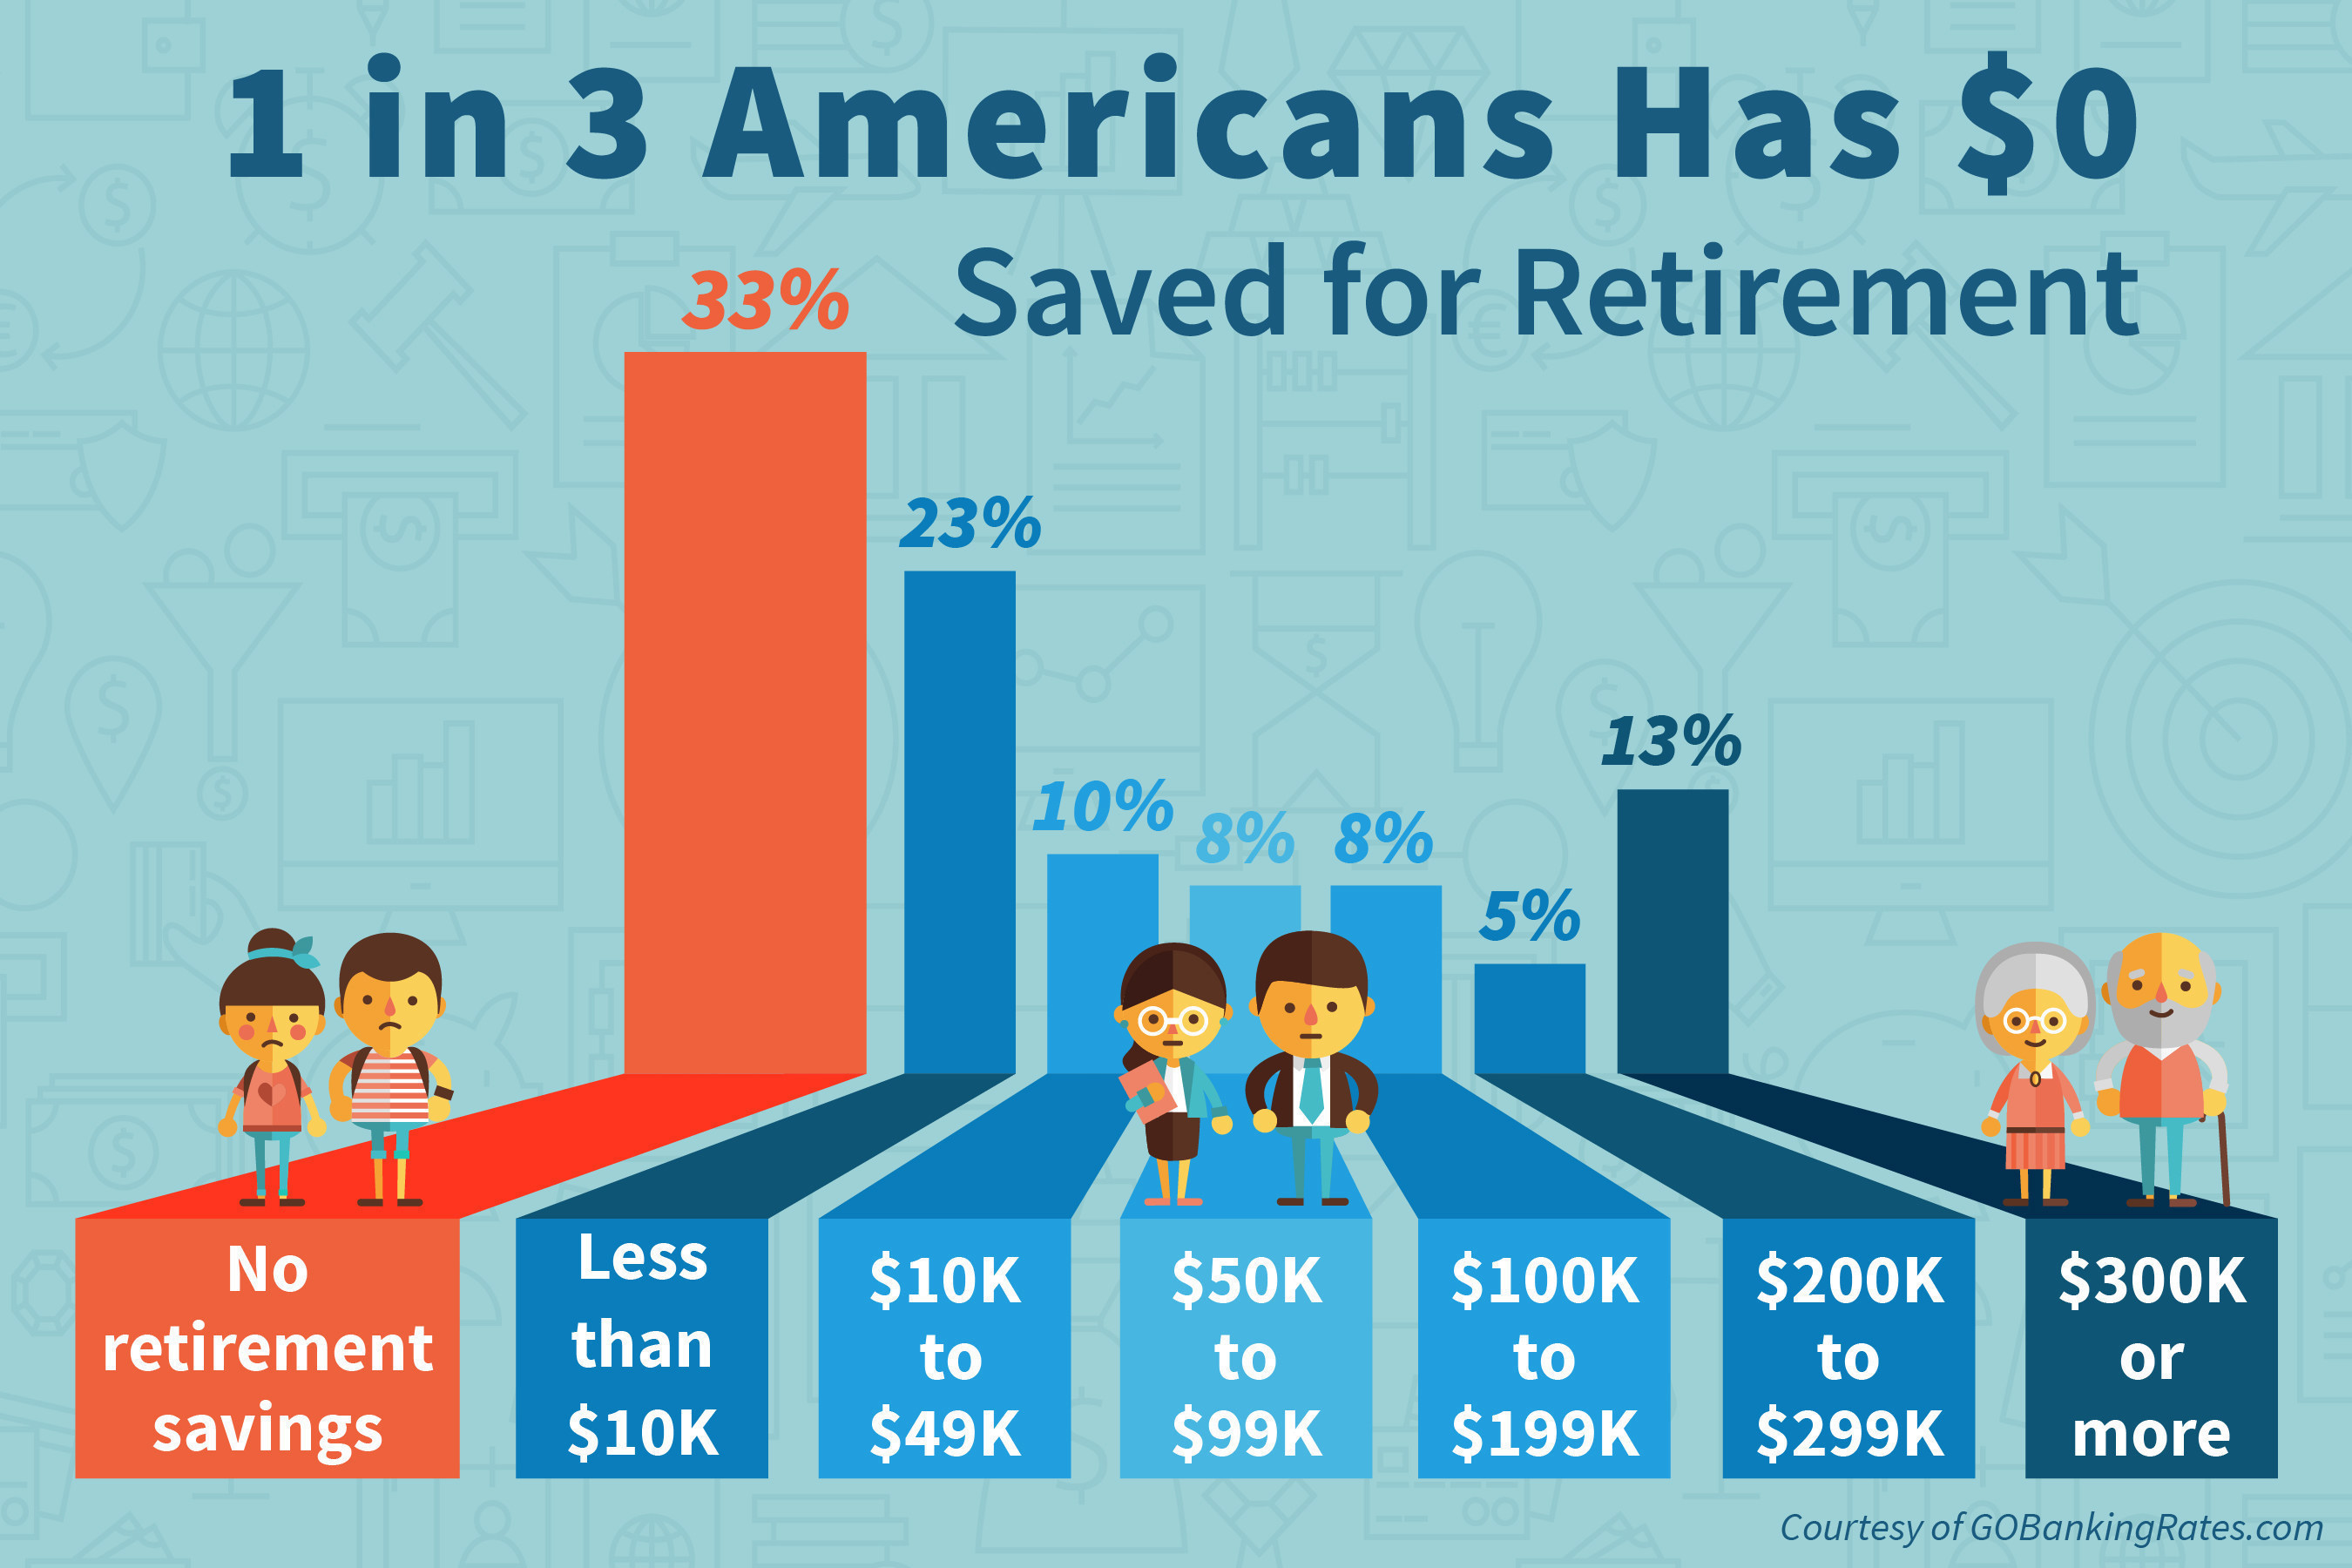 Latest GOBankingRates survey finds that 1 in 3 Americans has $0 saved for retirement.